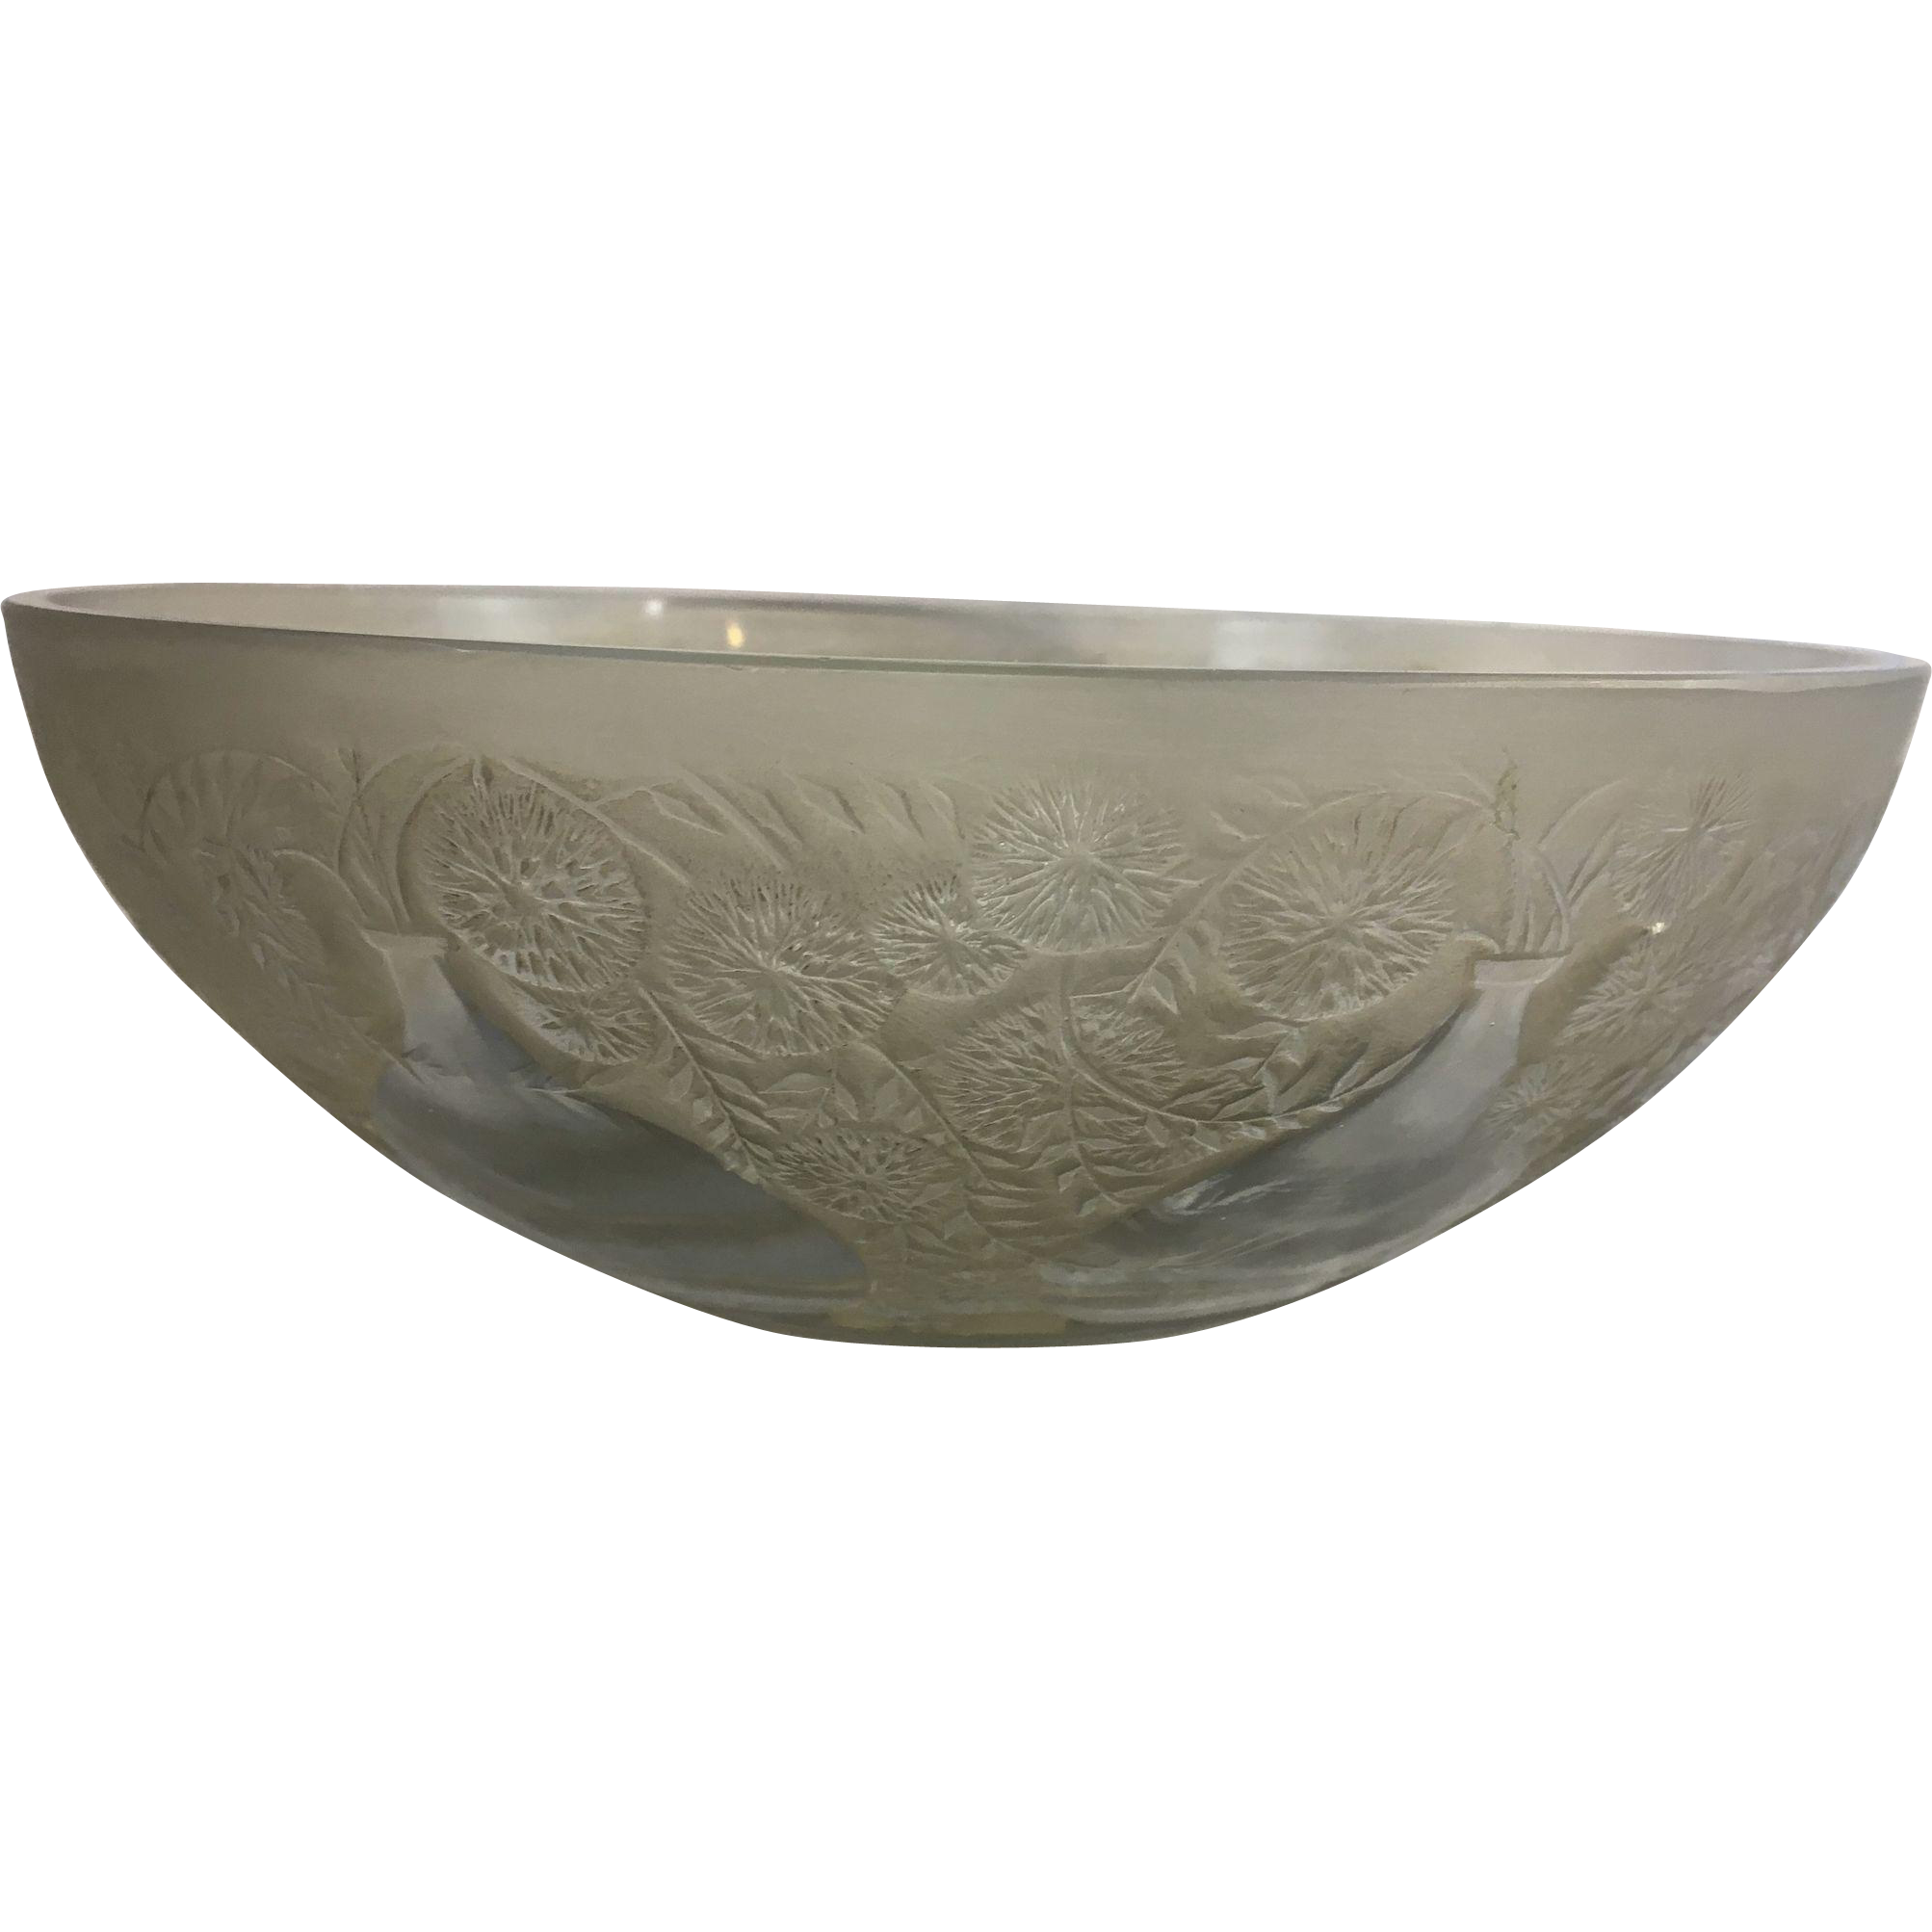 1921 rene r lalique art glass bowl vases france french frosted 1921 rene r lalique art glass bowl vases france french frosted brown patination clear floridaeventfo Gallery